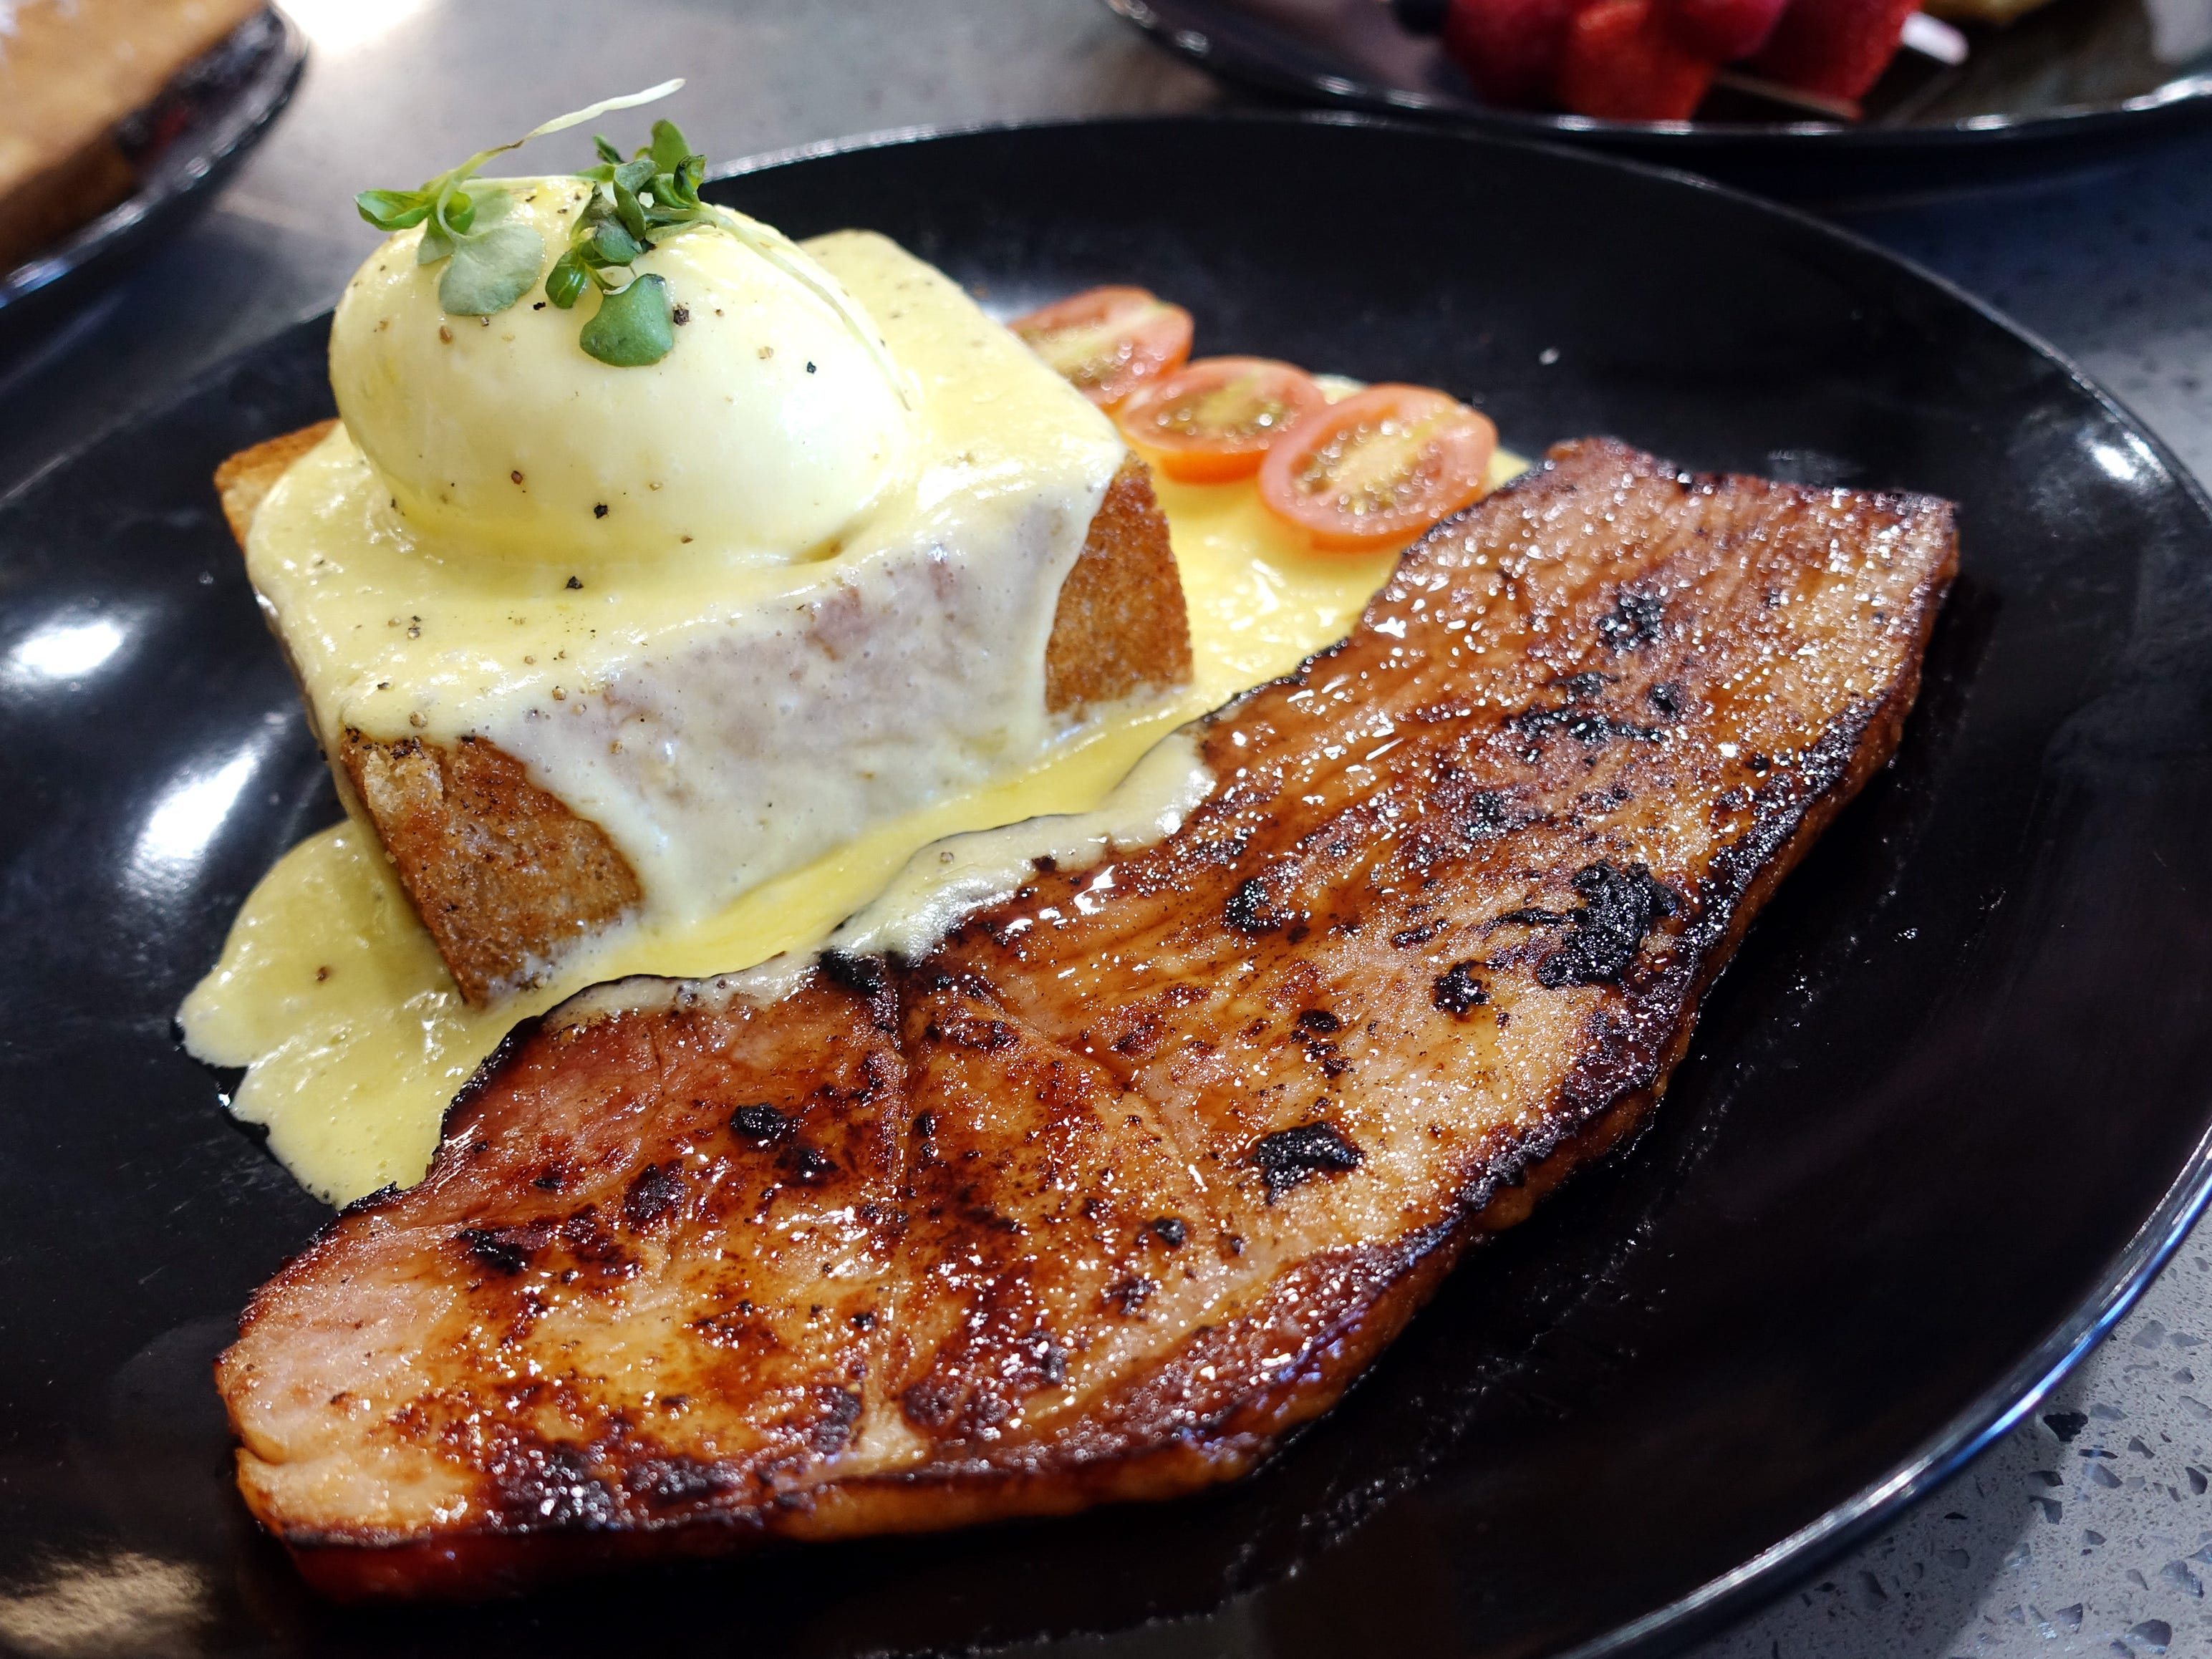 Season's Benedict with buttered toast crouton, soft-boiled egg, grilled ham steak, fresh tomatoes and Hollandaise at Sweetest Season Artisan Eatery in Tempe.